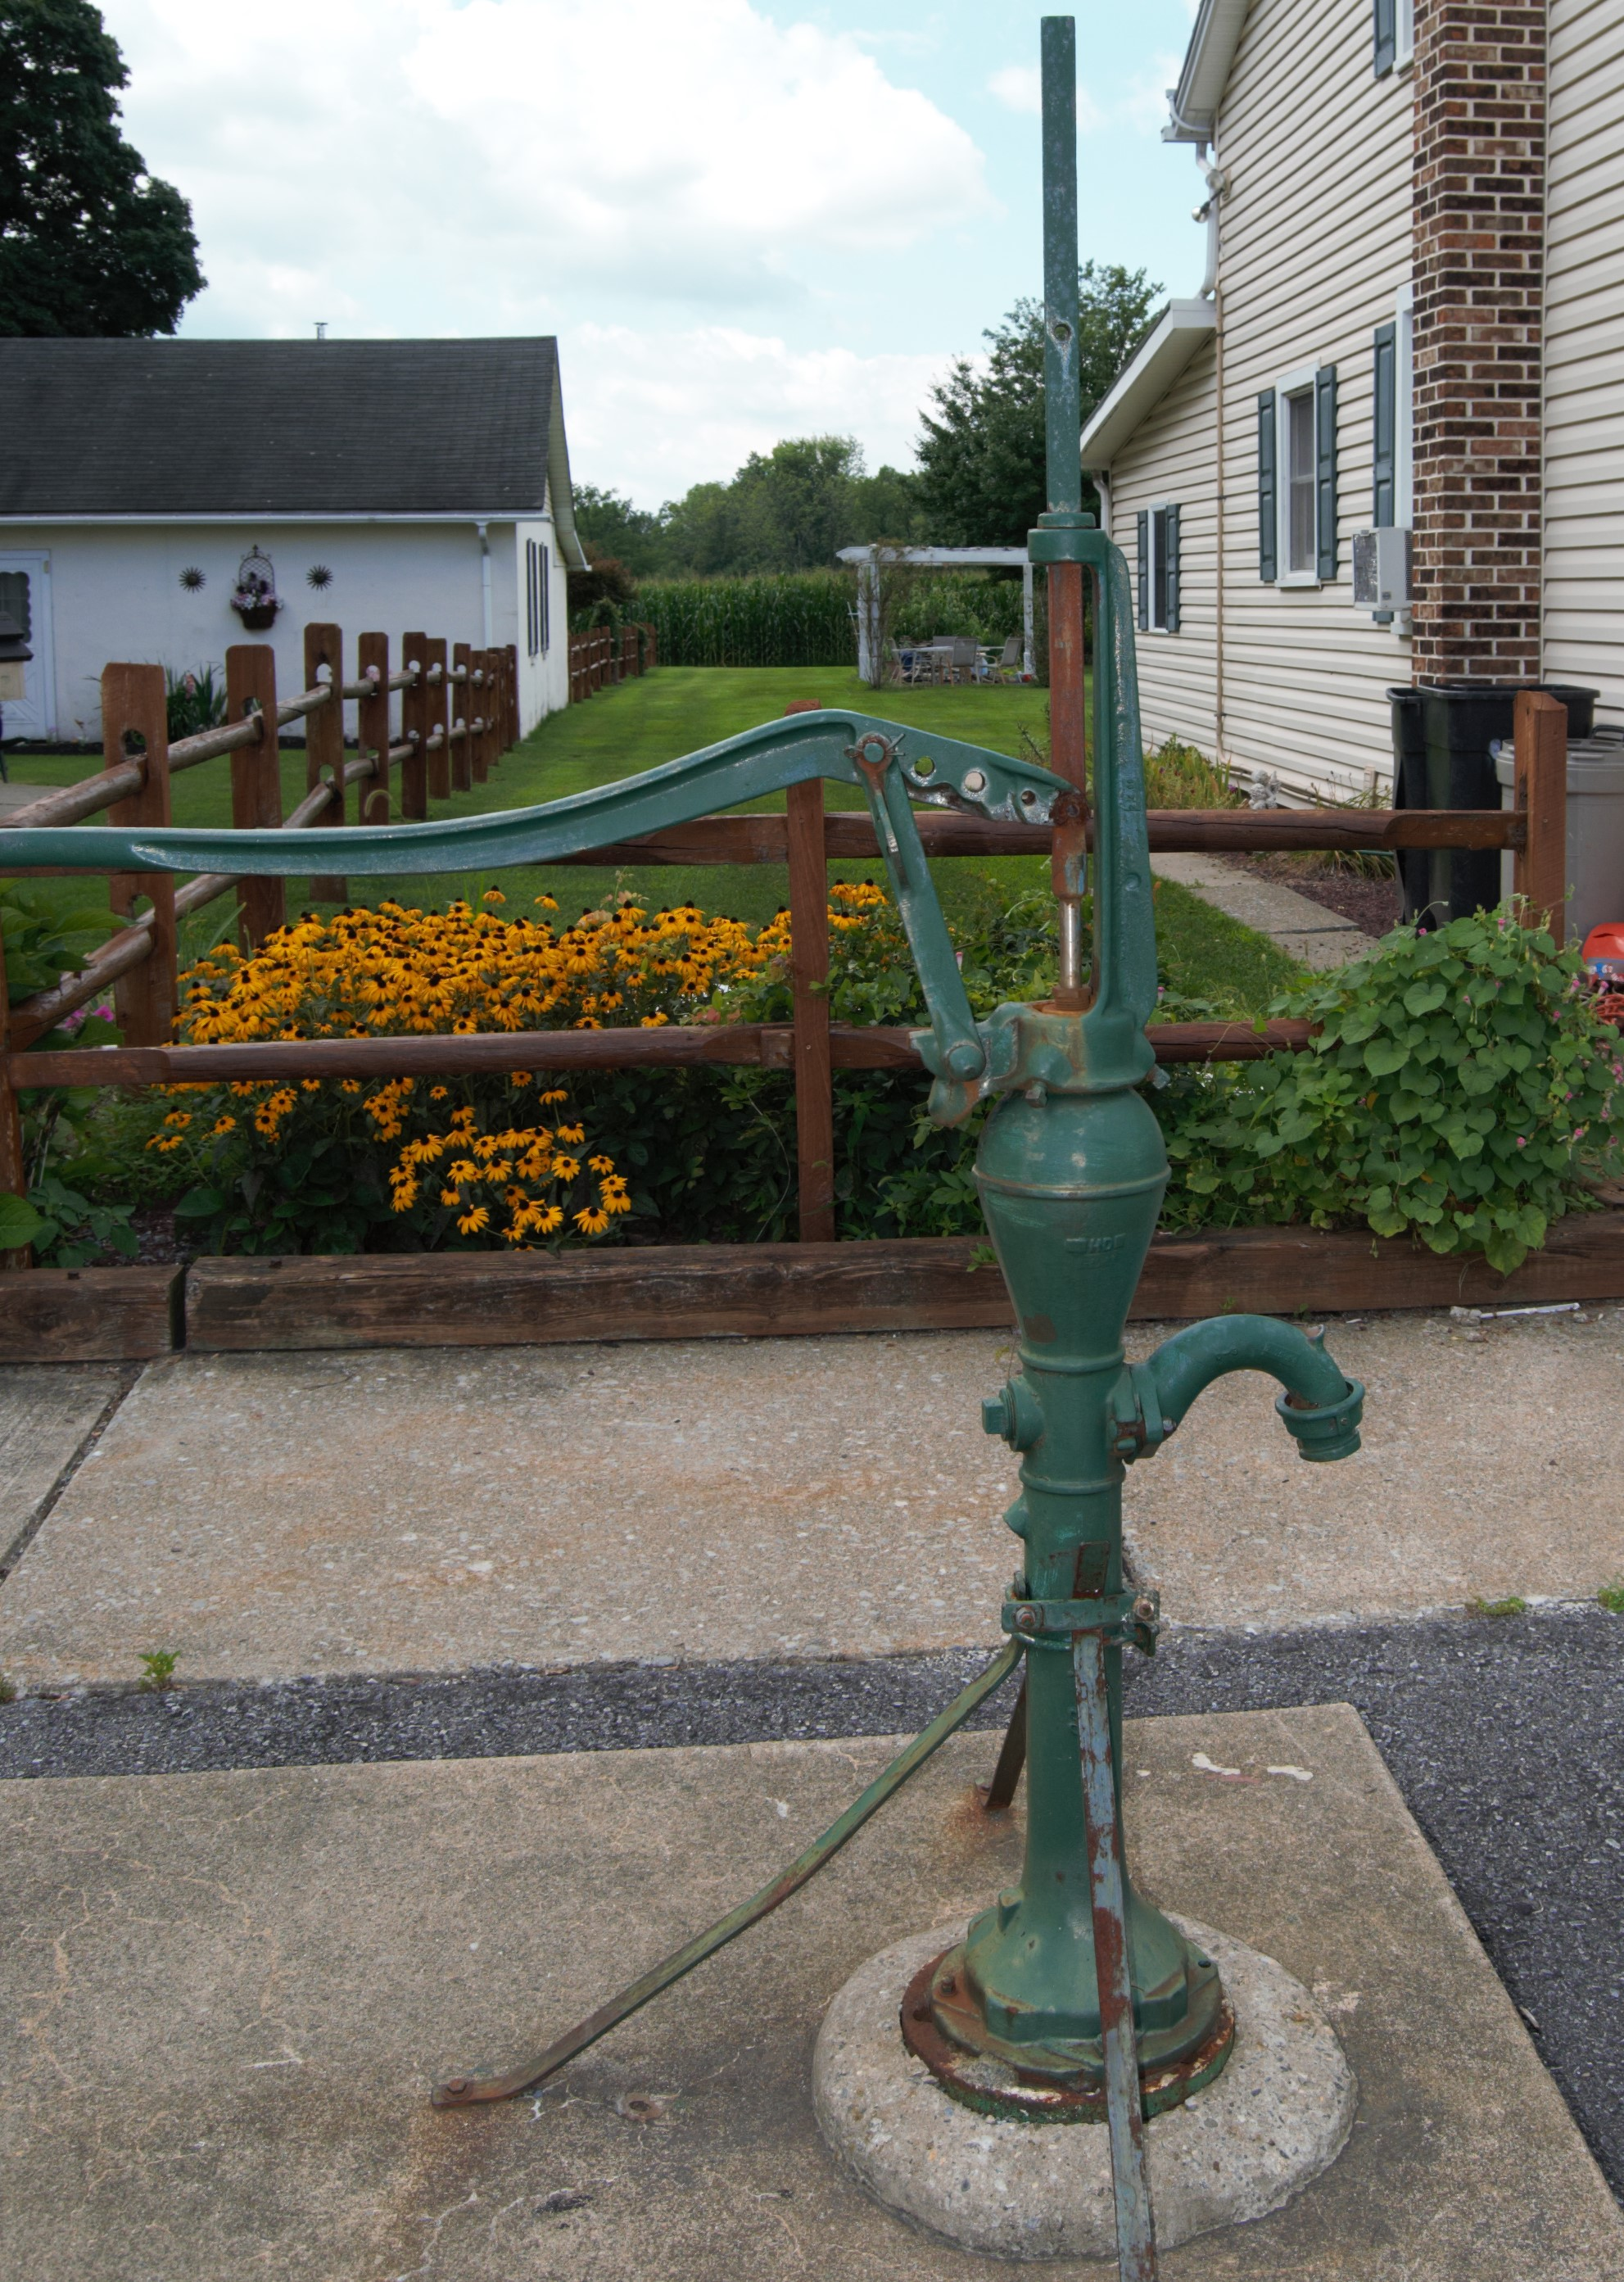 - One of two remaining pumps on Main St